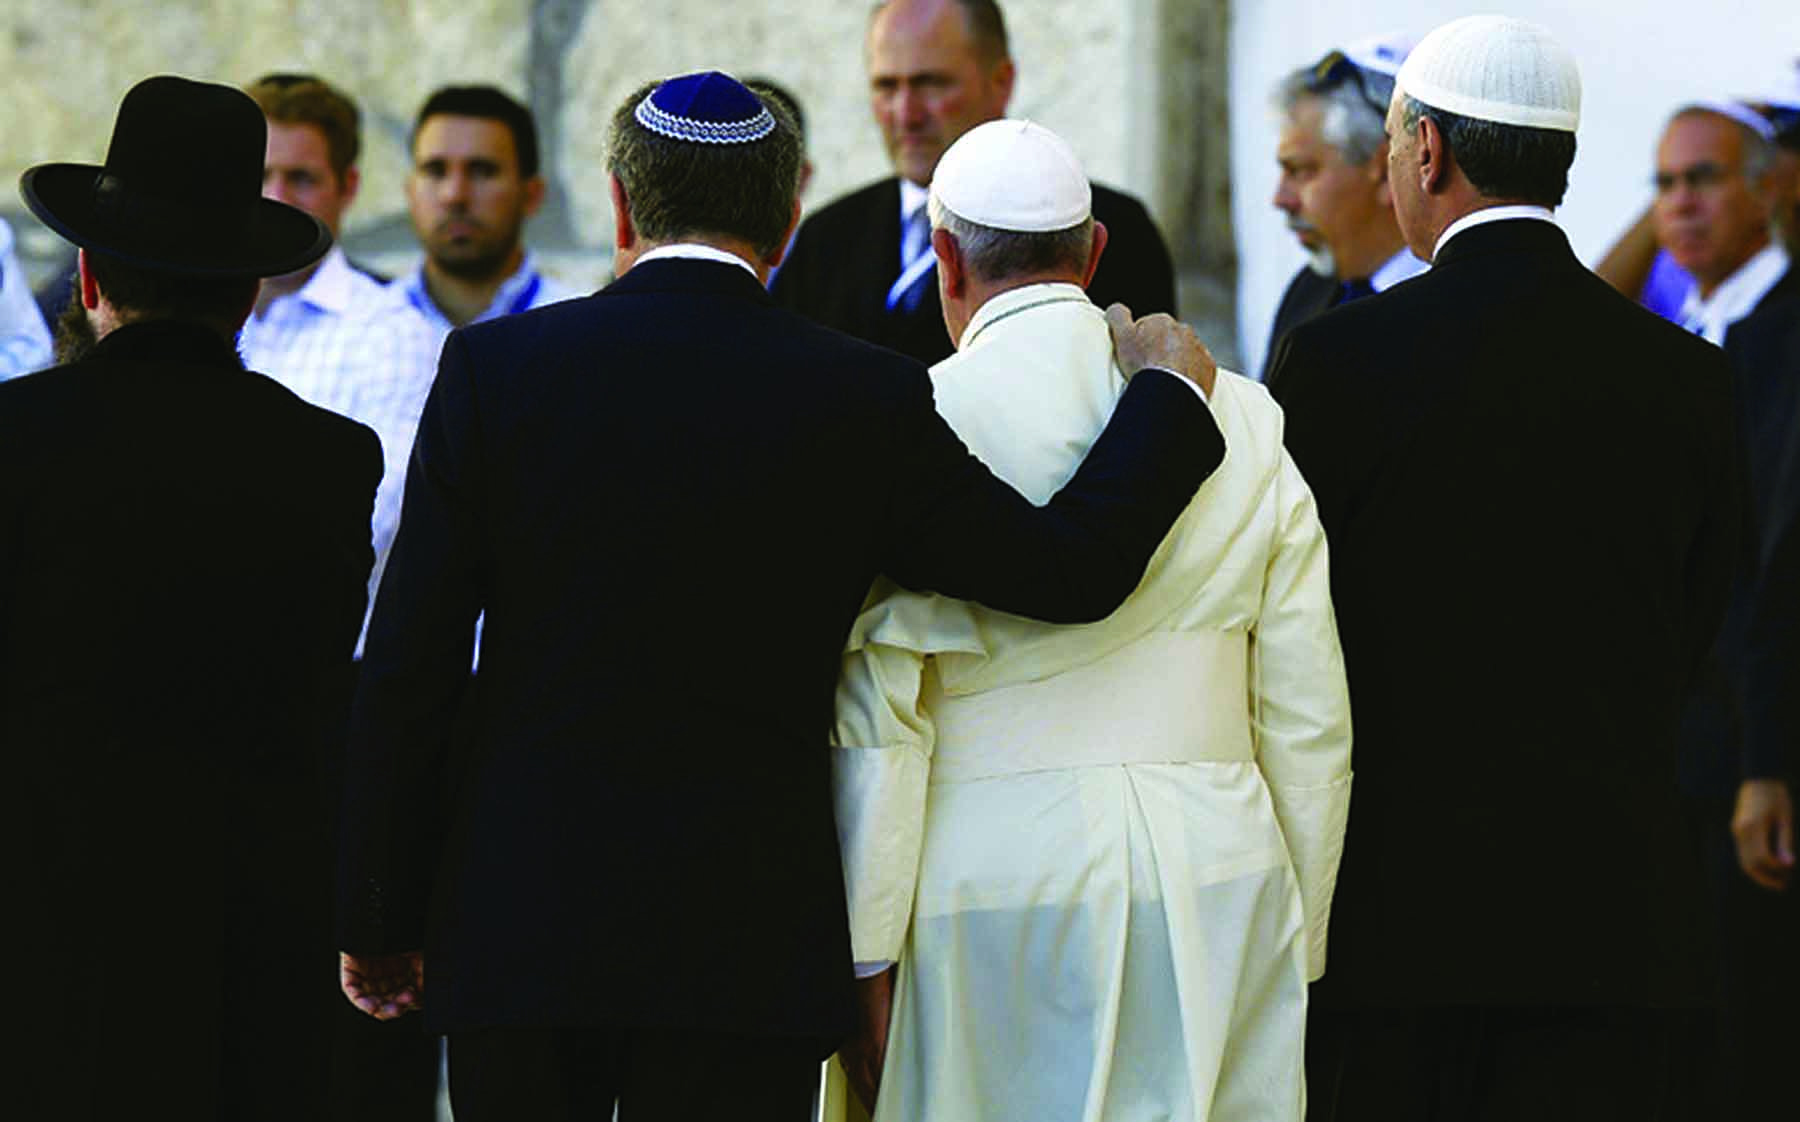 Argentine Rabbi Abraham Skorka, a longtime friend, embraces Pope Francis after praying at the Western Wall in Jerusalem in 2014. (Photo by CNS/Paul Haring)